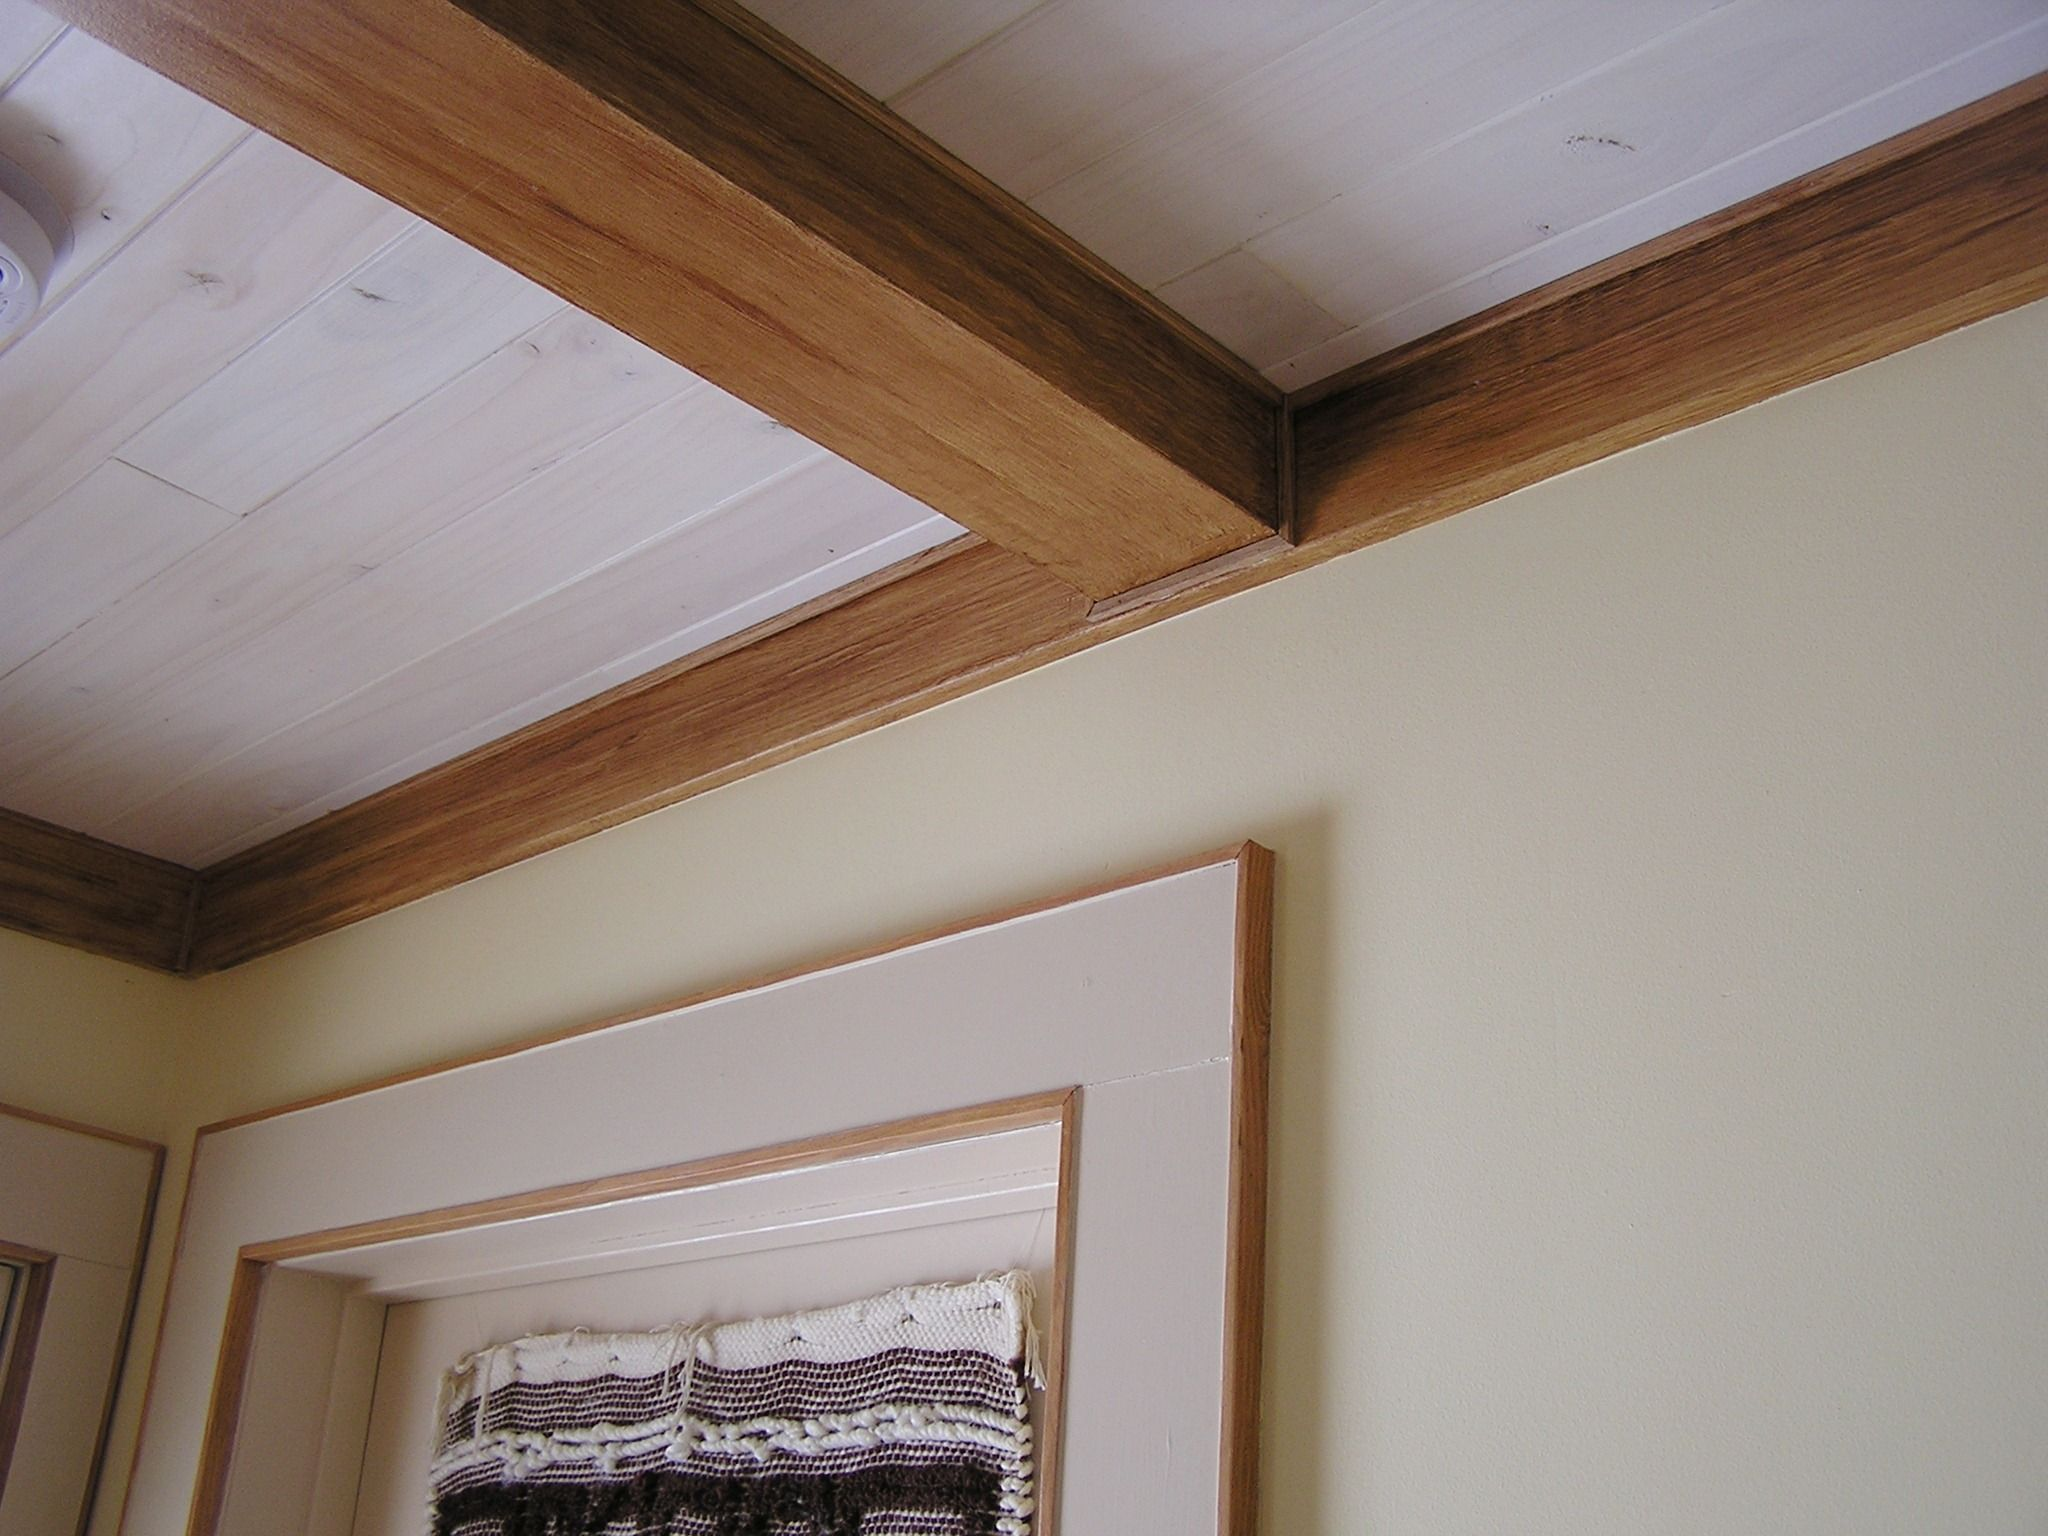 vaulted ceiling with ceiling fans Google Search